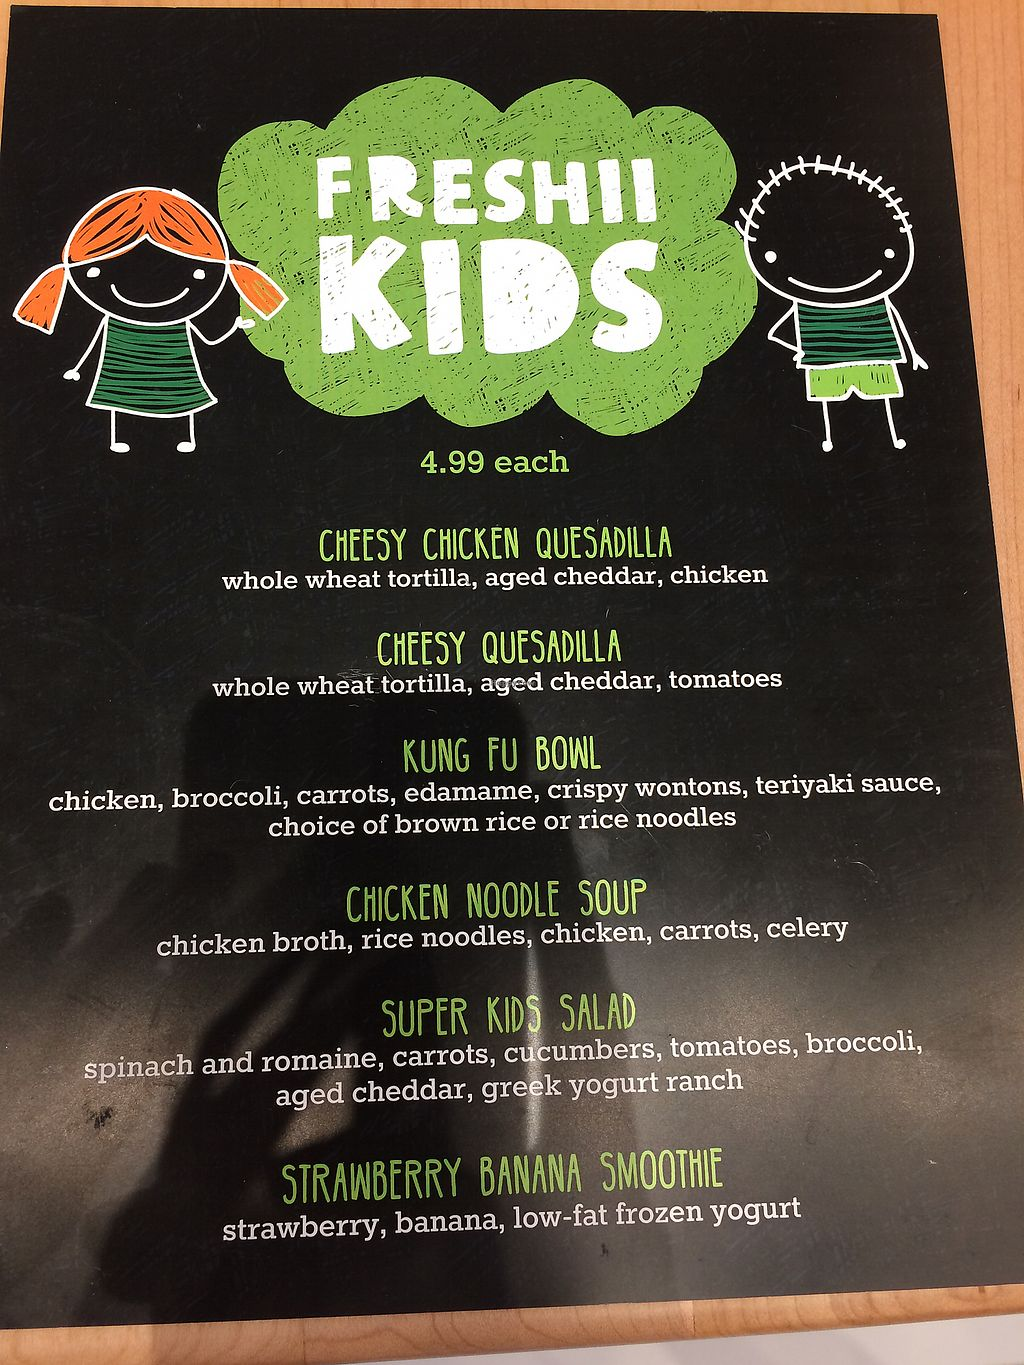 """Photo of freshii  by <a href=""""/members/profile/DeeJames"""">DeeJames</a> <br/>Kids menu ... can substitute tofu or falafel for chicken <br/> November 12, 2017  - <a href='/contact/abuse/image/104852/324477'>Report</a>"""